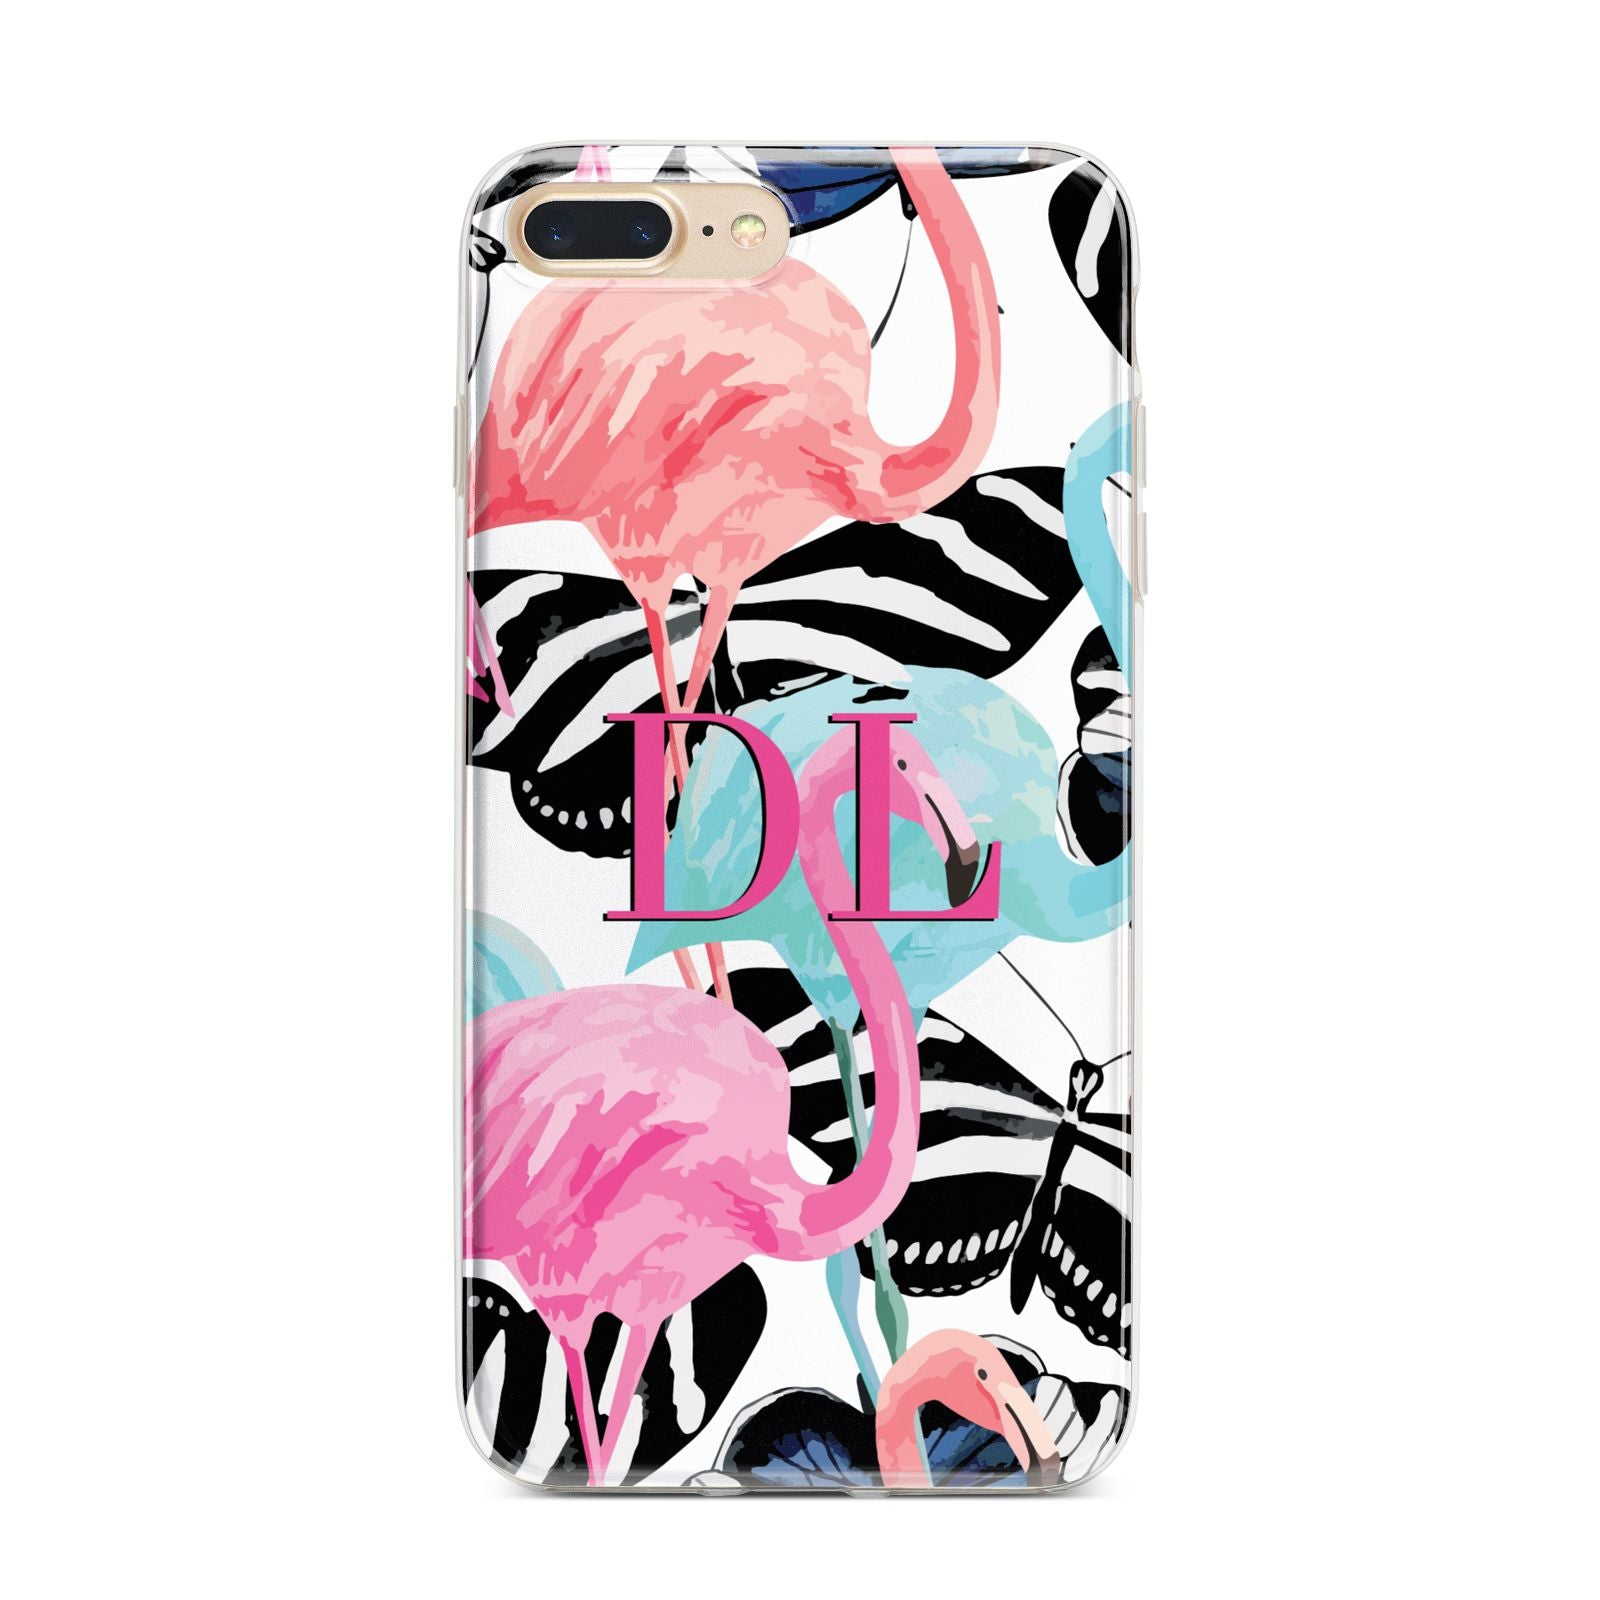 Butterflies Flamingos iPhone 7 Plus Bumper Case on Gold iPhone